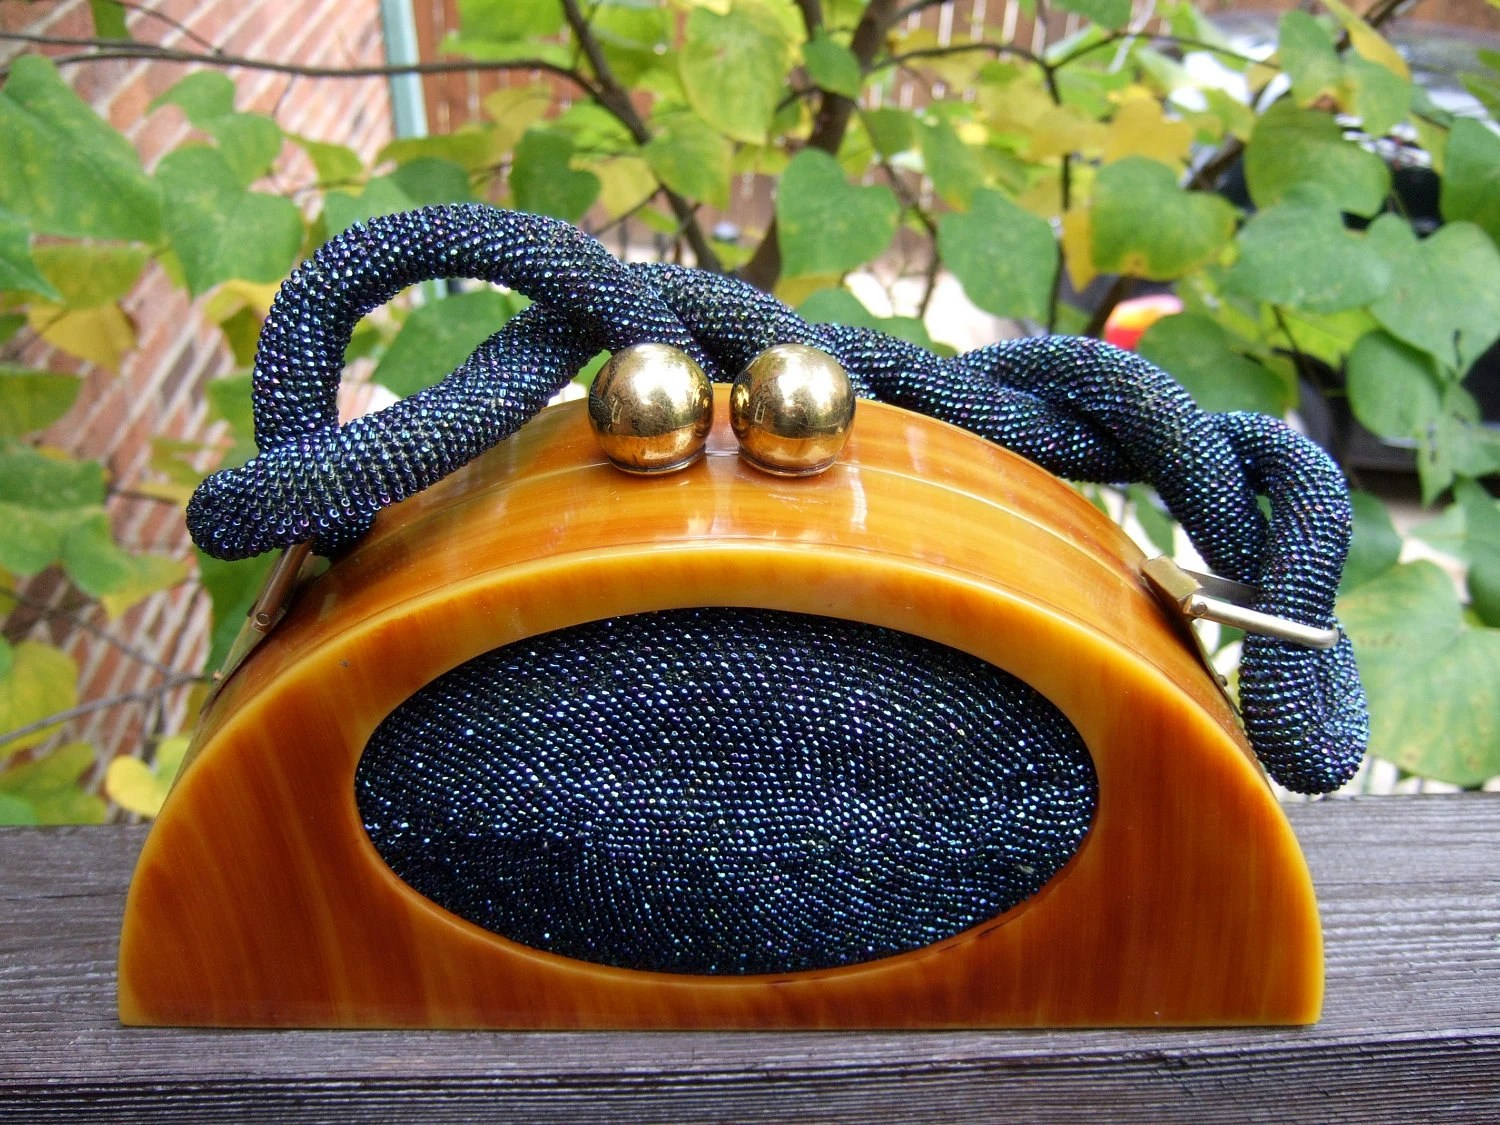 Bakelite & Cobalt Carnival Beaded Handbag from worldmarketproductio on Etsy